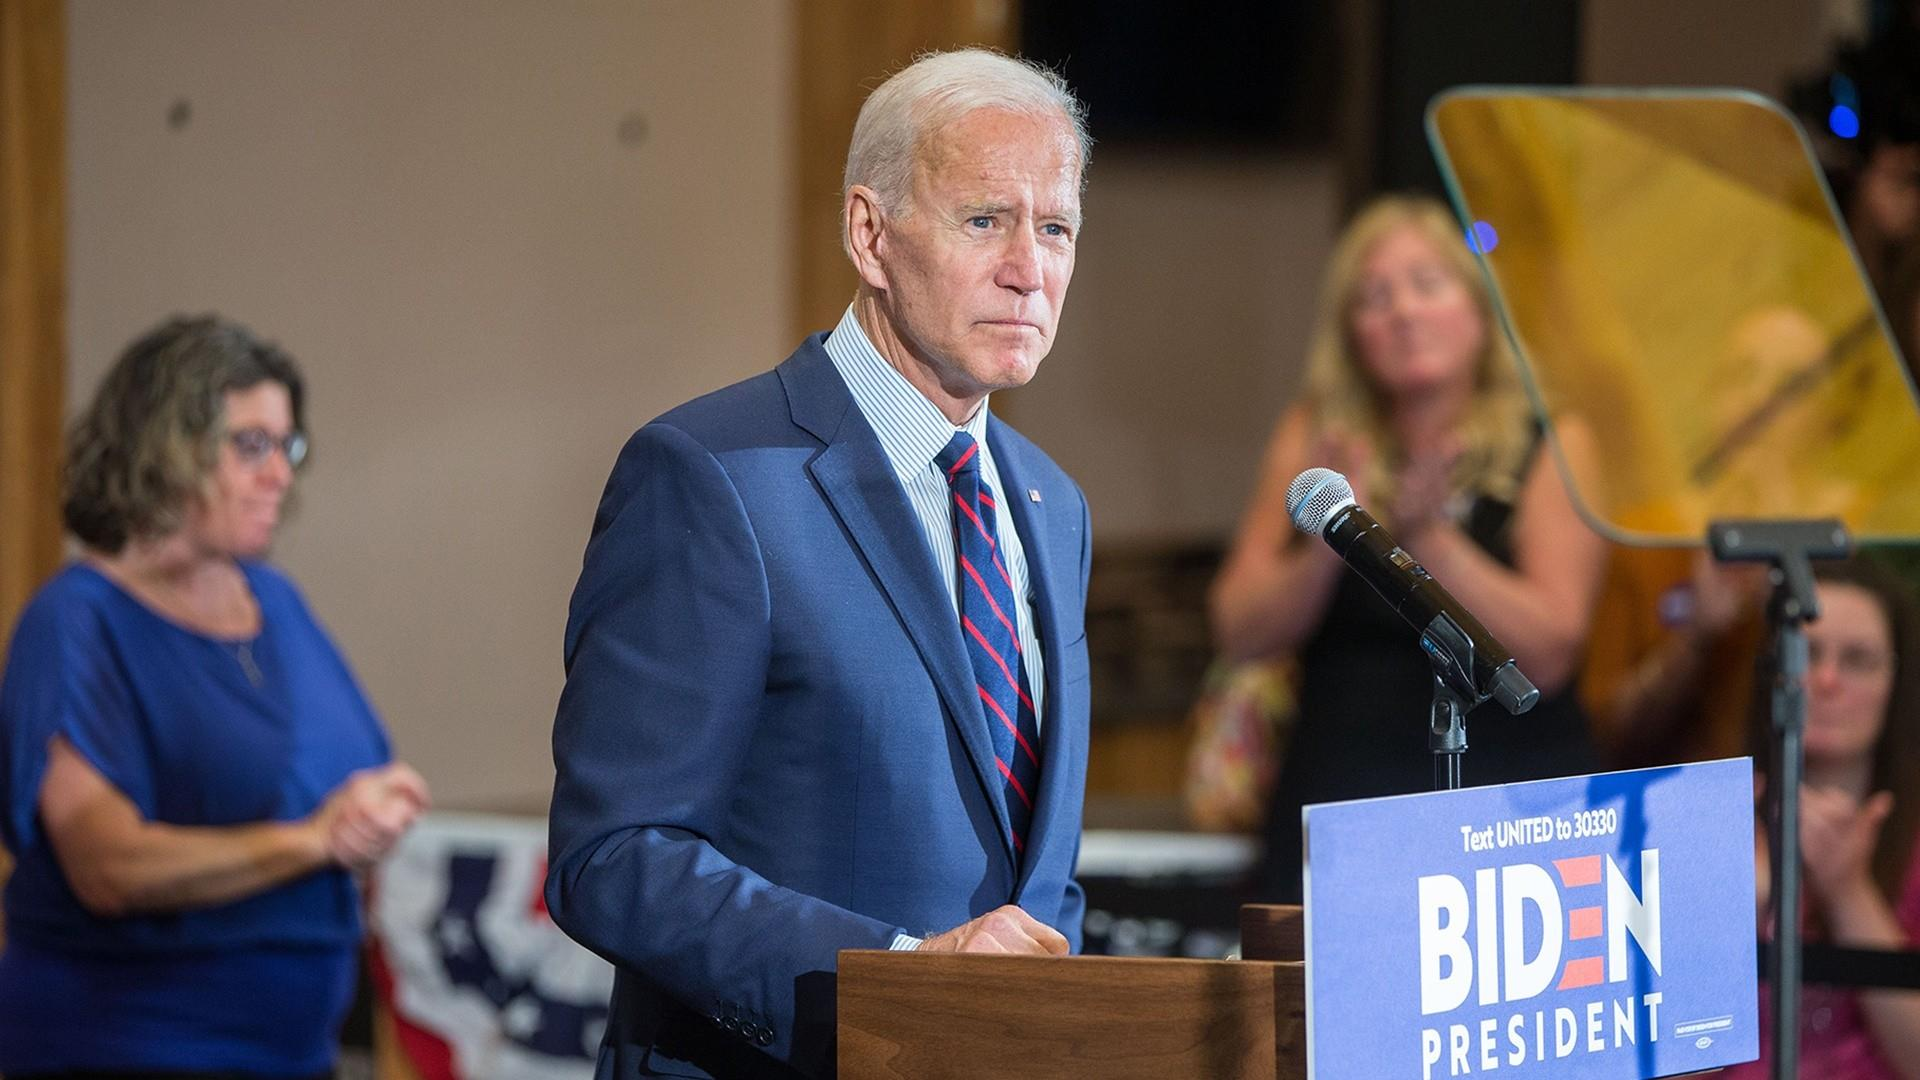 Trump rips Biden and son, says former VP 'understood how to kiss Barack Obama's ass'